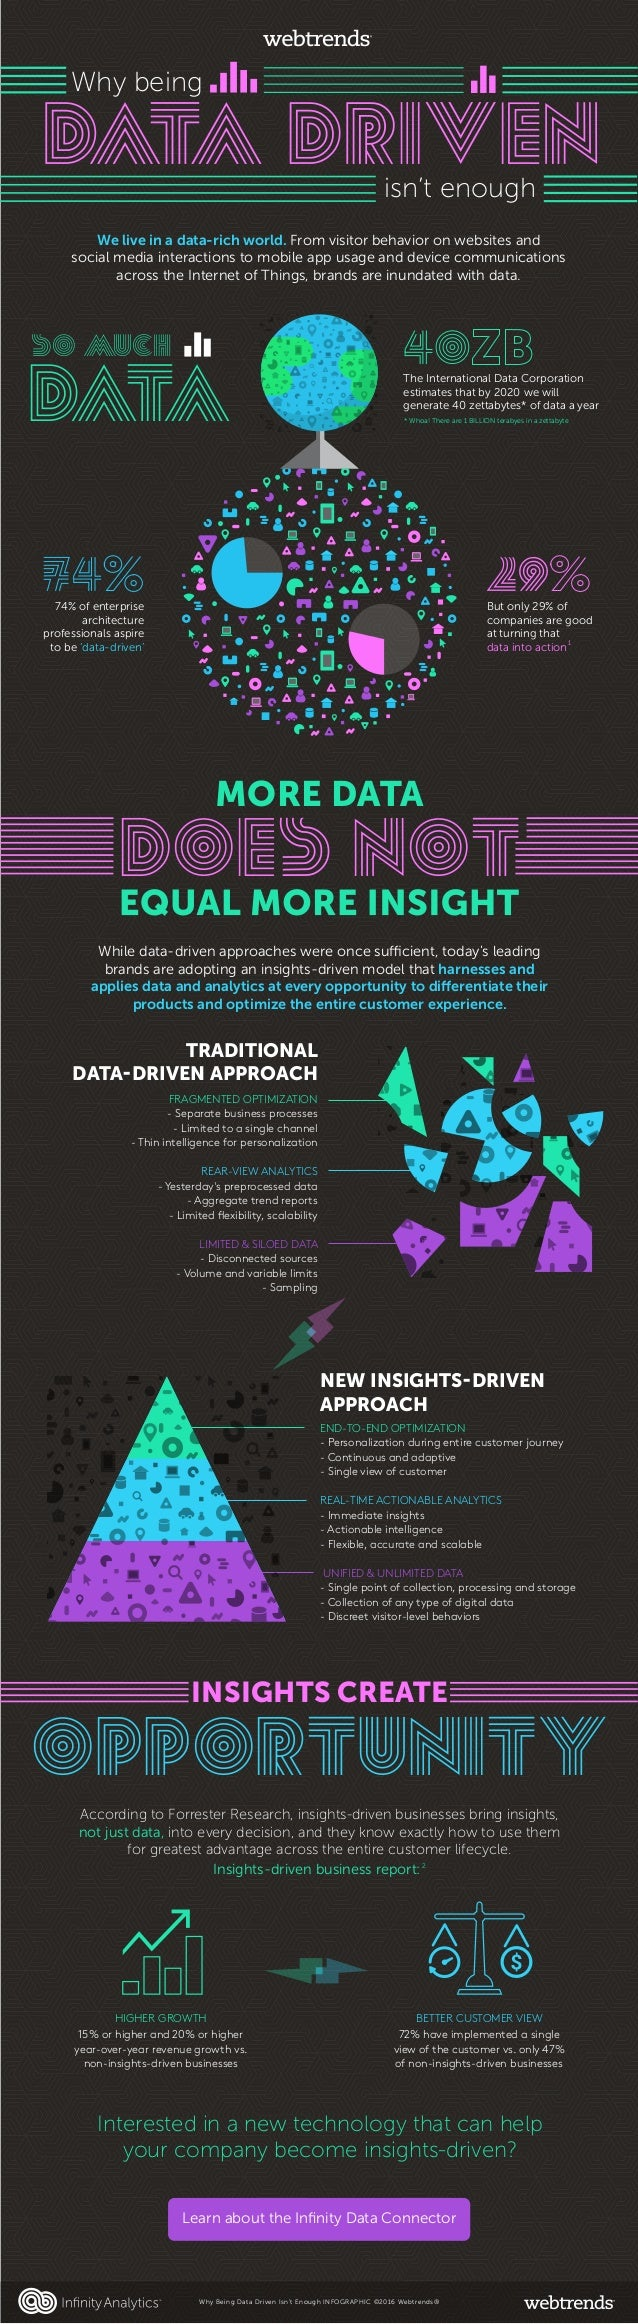 TRADITIONAL DATA-DRIVEN APPROACH FRAGMENTED OPTIMIZATION - Separate business processes - Limited to a single channel - Thi...